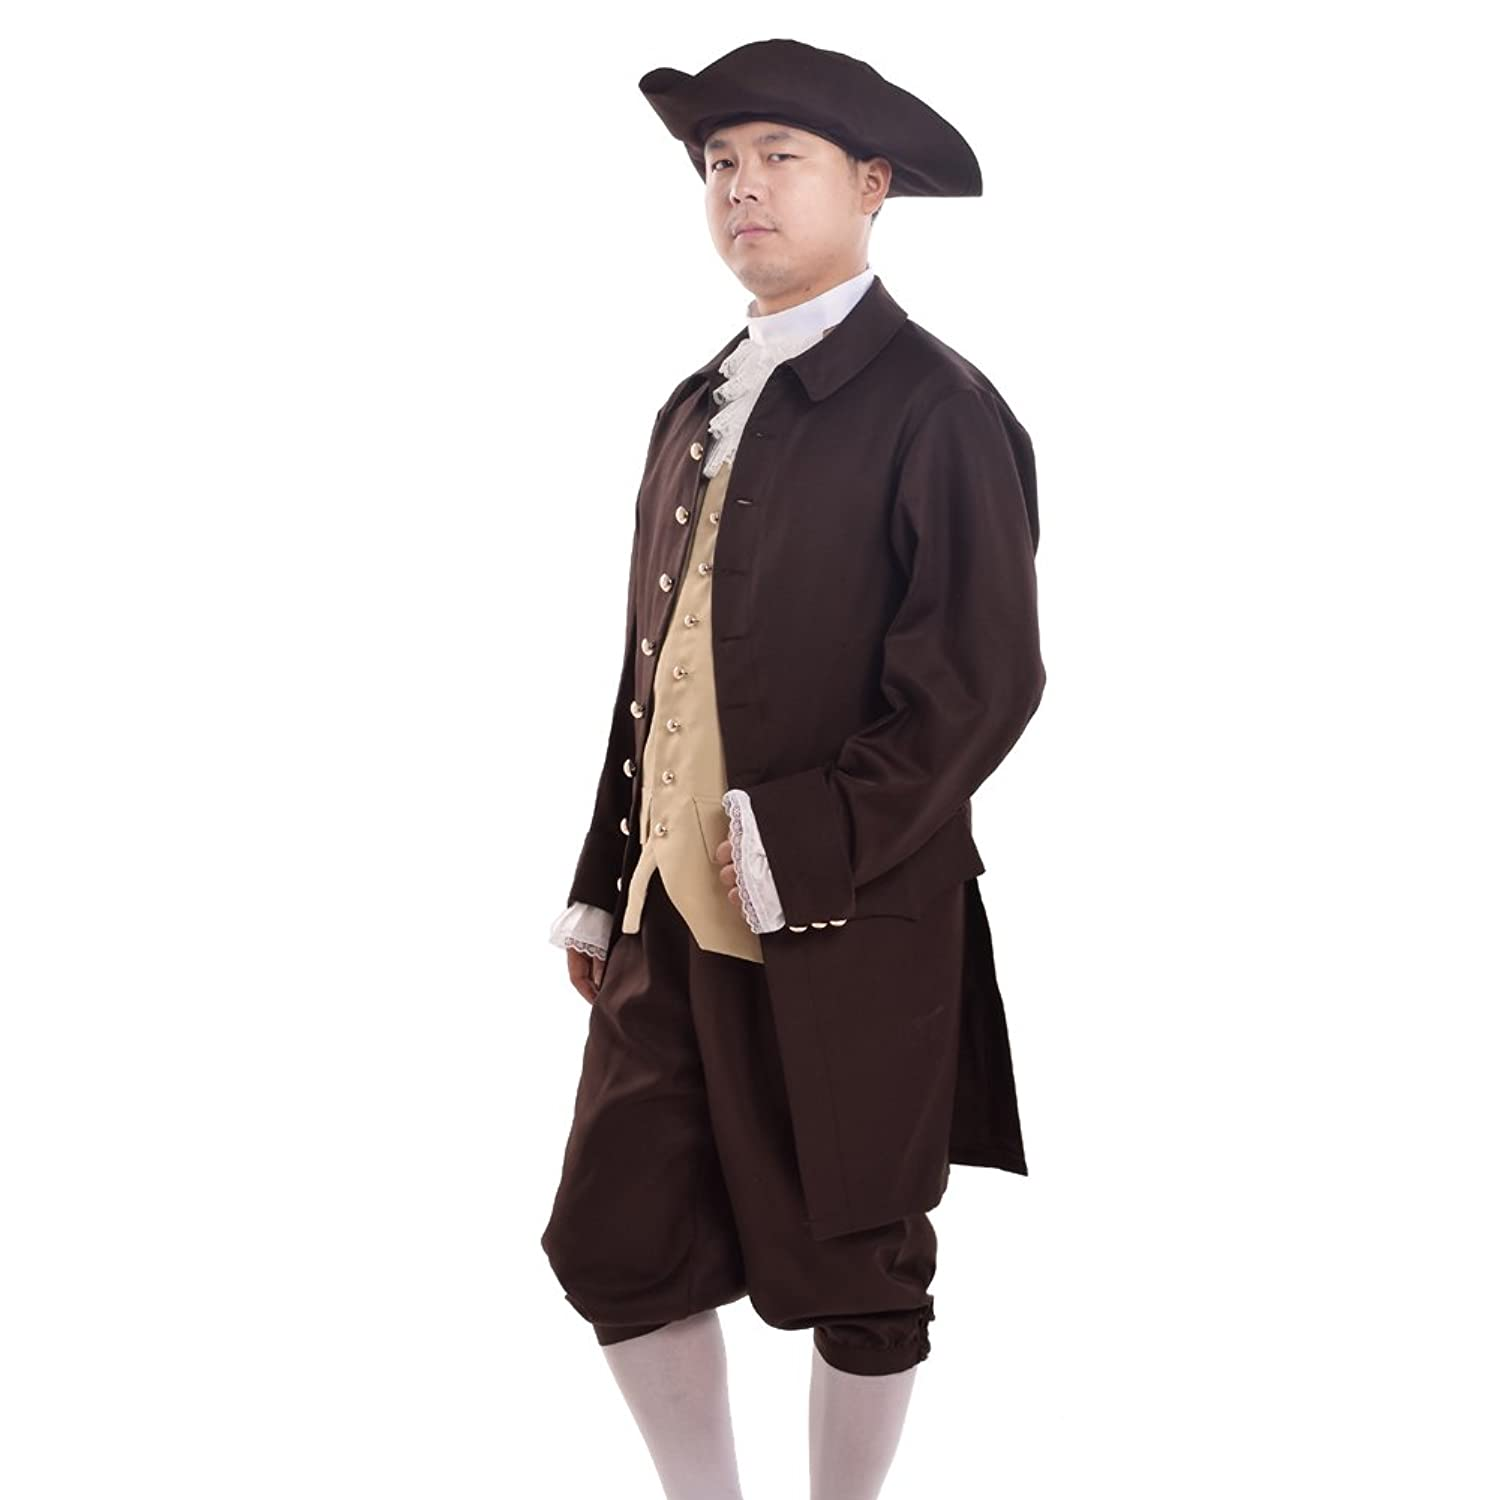 BLESSUME Men's Colonial Costume Set